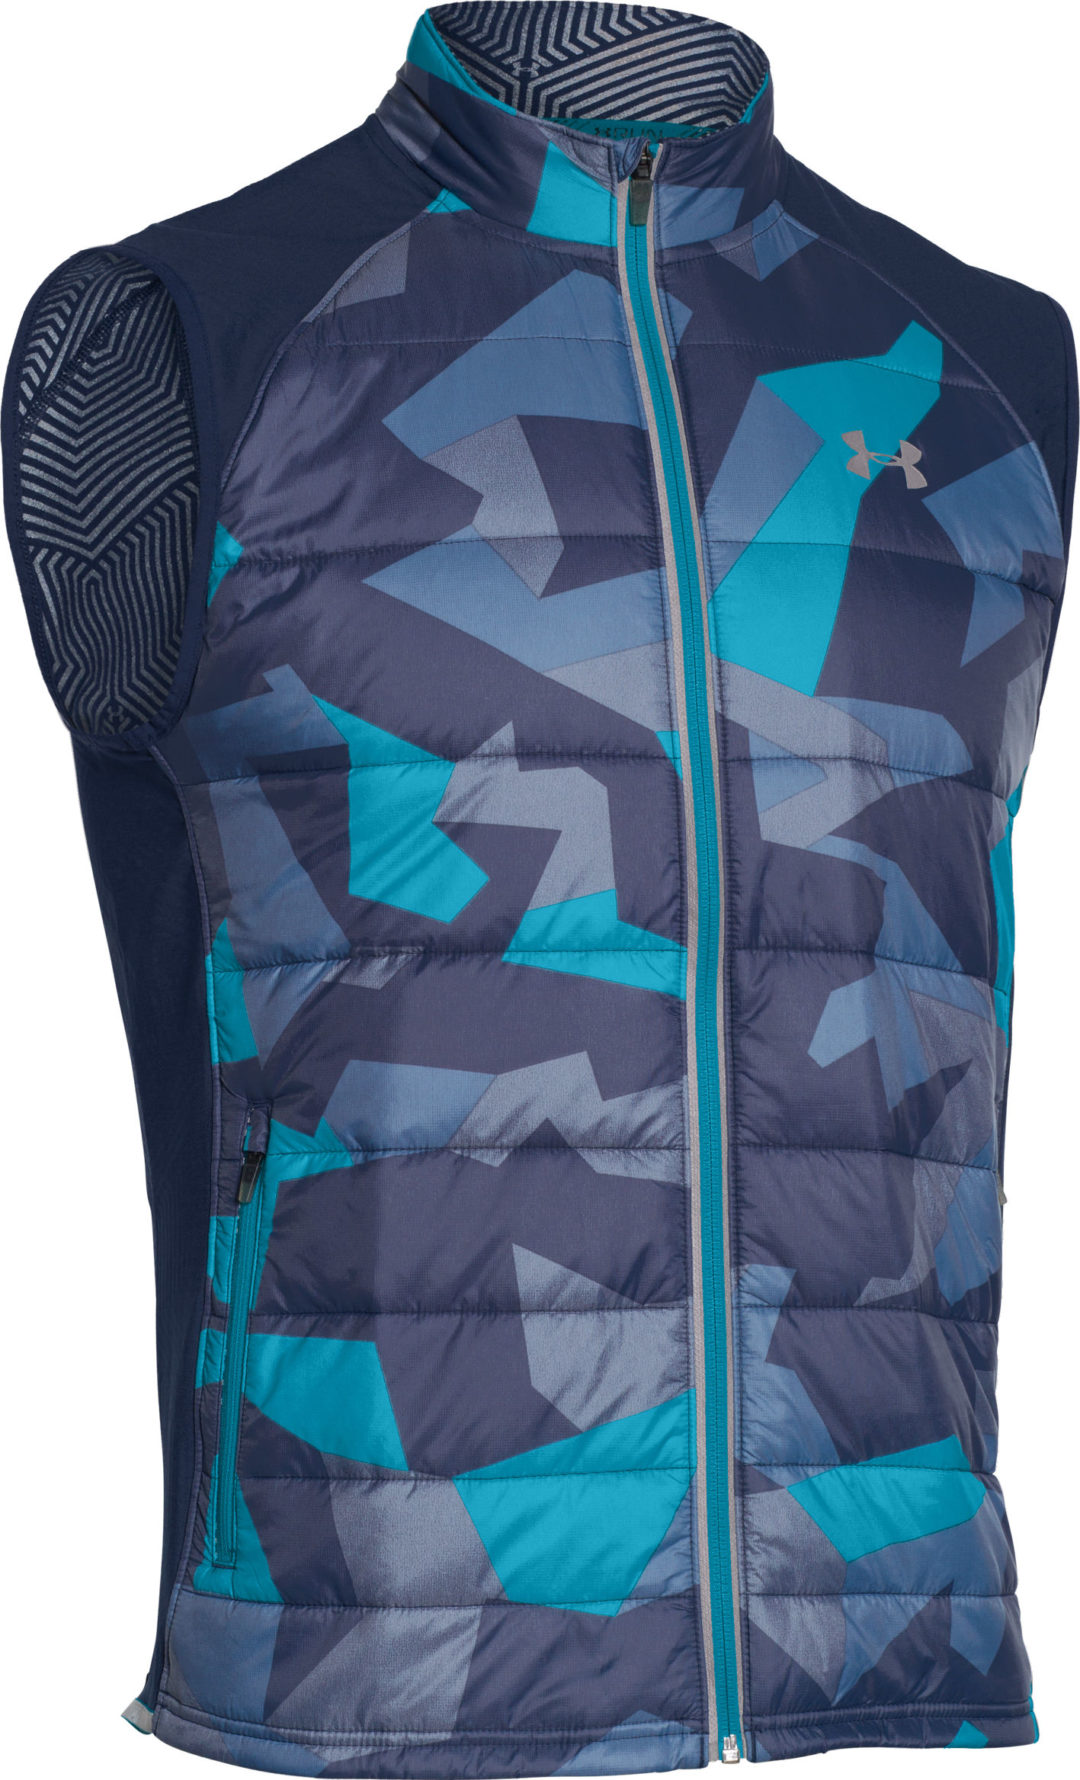 1cd0b16aaa Kickstart 2016: Under Armour Coldgear Winterlaufpaket - Blog übers ...